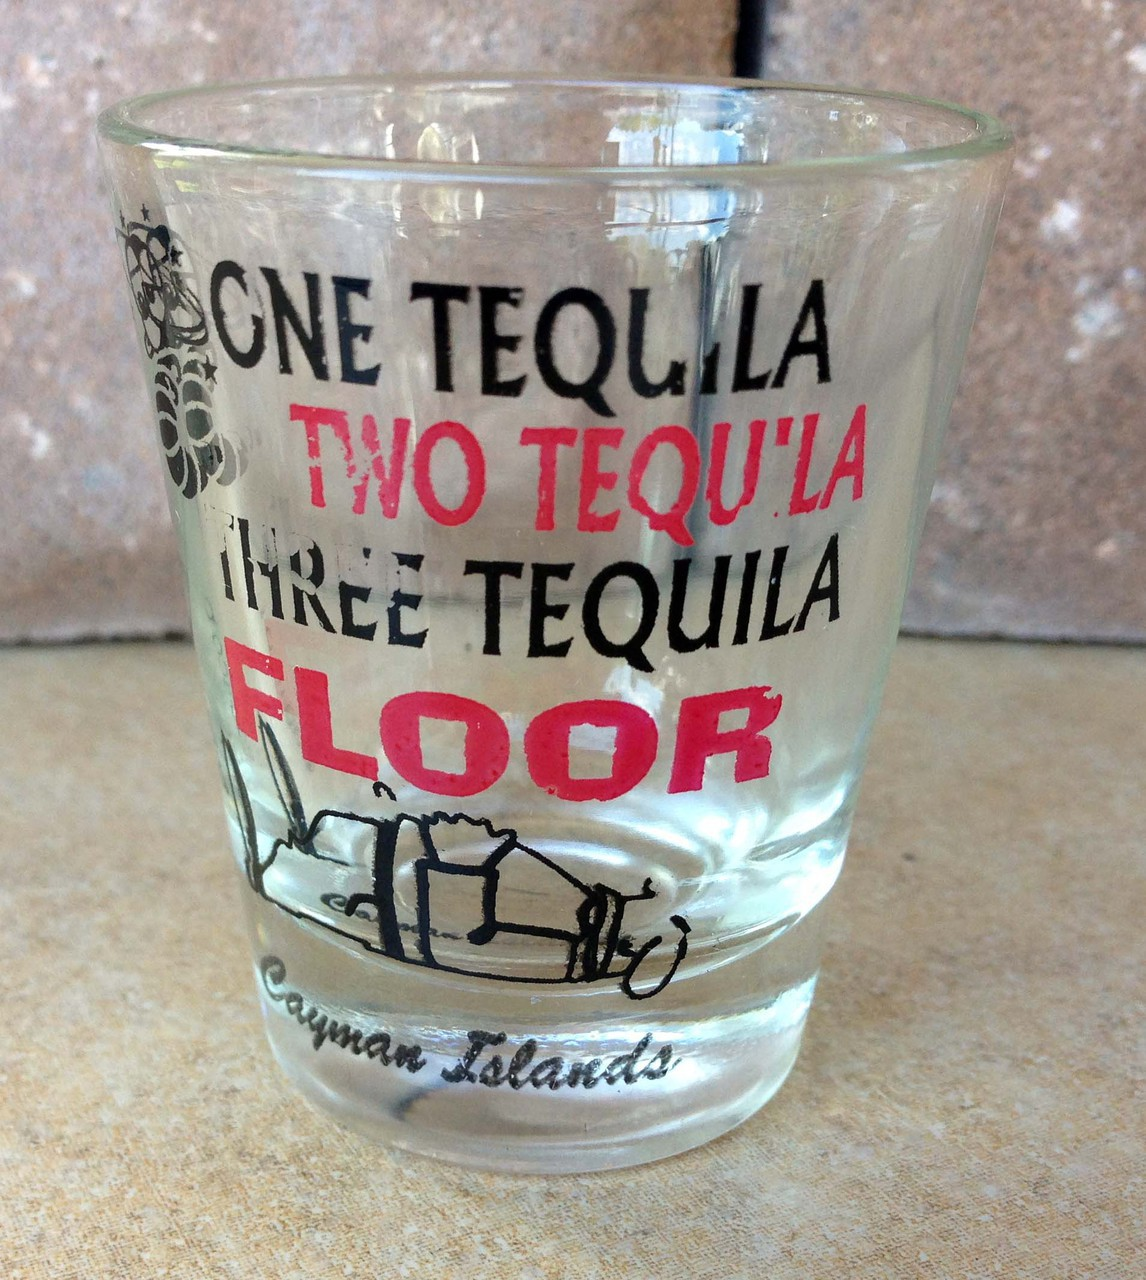 Cayman islands one tequila two tequila three tequila floor for 1 tequila 2 tequila 3 tequila floor lyrics